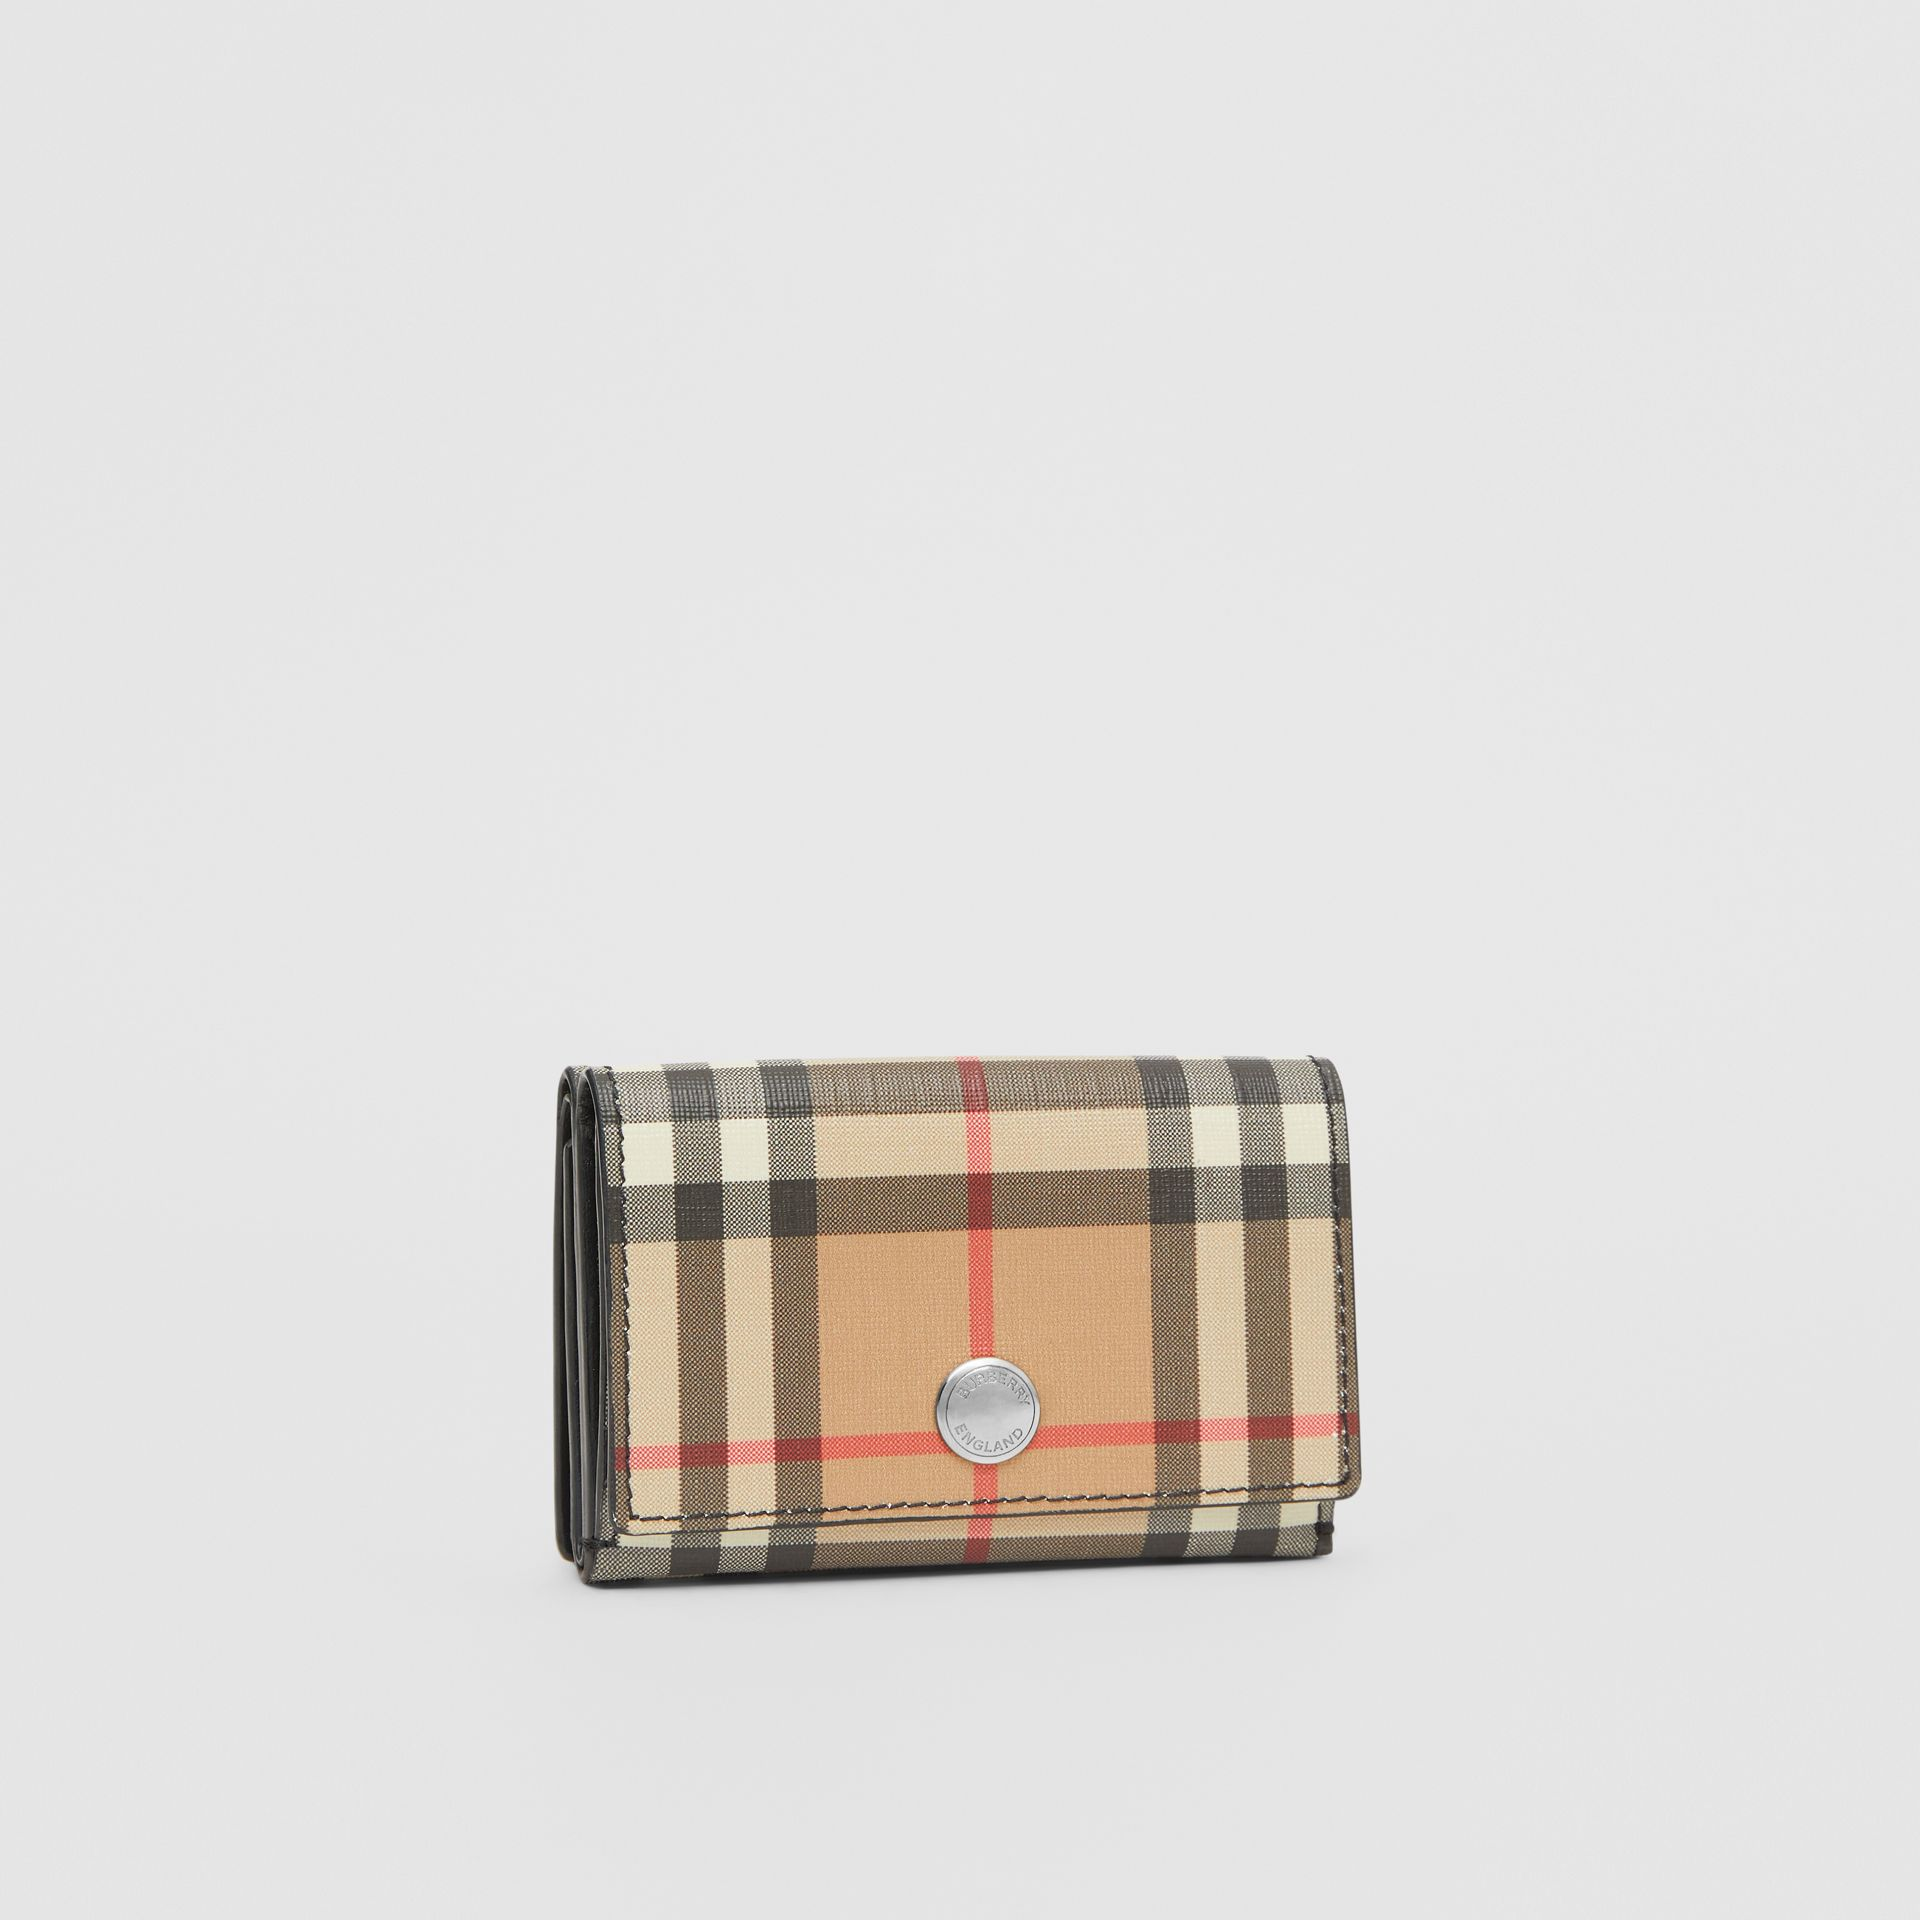 Small Vintage Check E-canvas Folding Wallet in Black - Women | Burberry Canada - gallery image 3